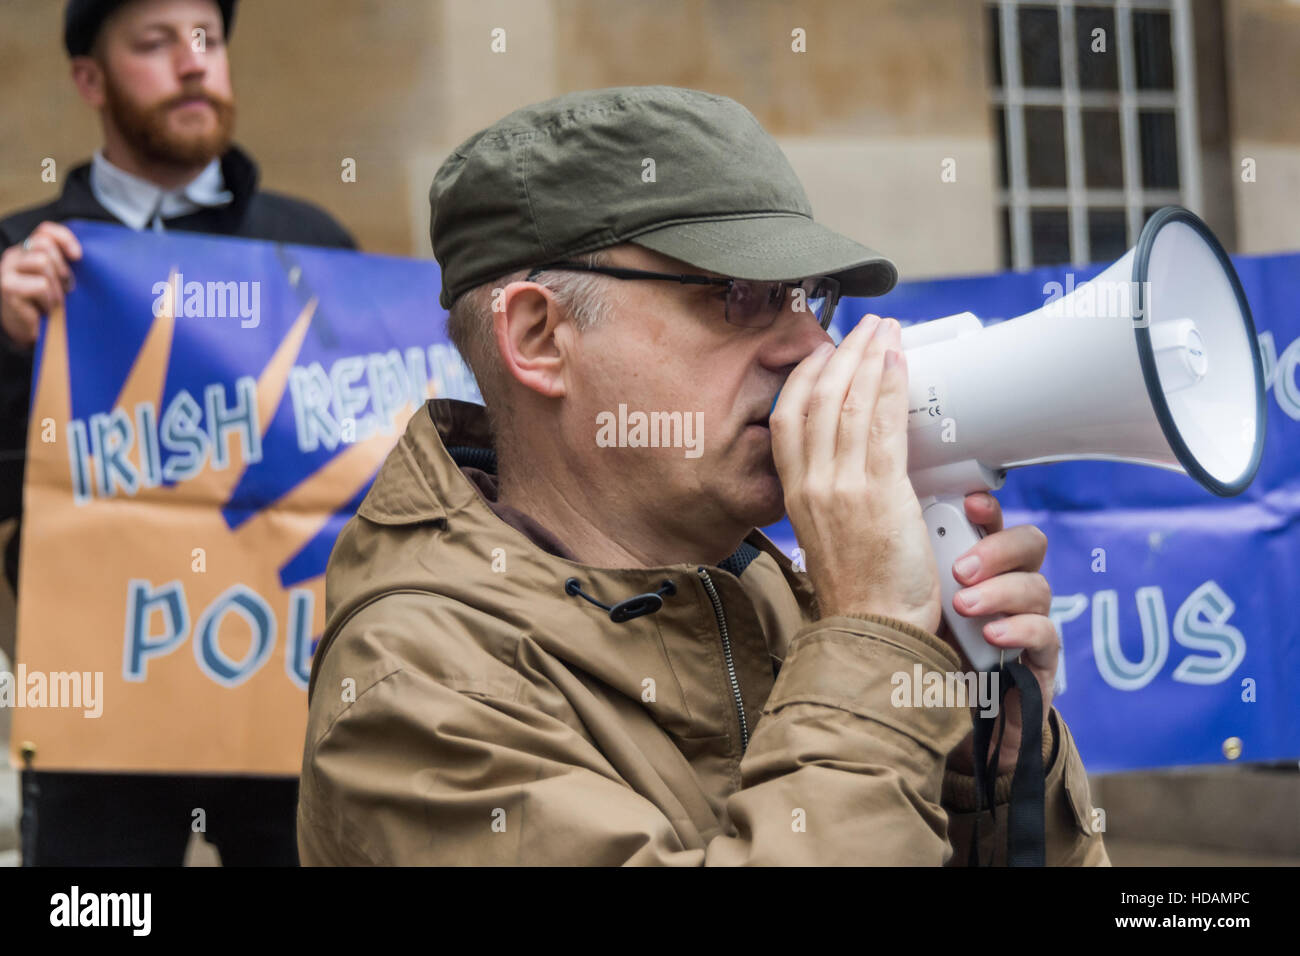 London, UK. 10th December 2016. A man speaks at the protest outside the BBC on UN Human Rights Day and highlights - Stock Image